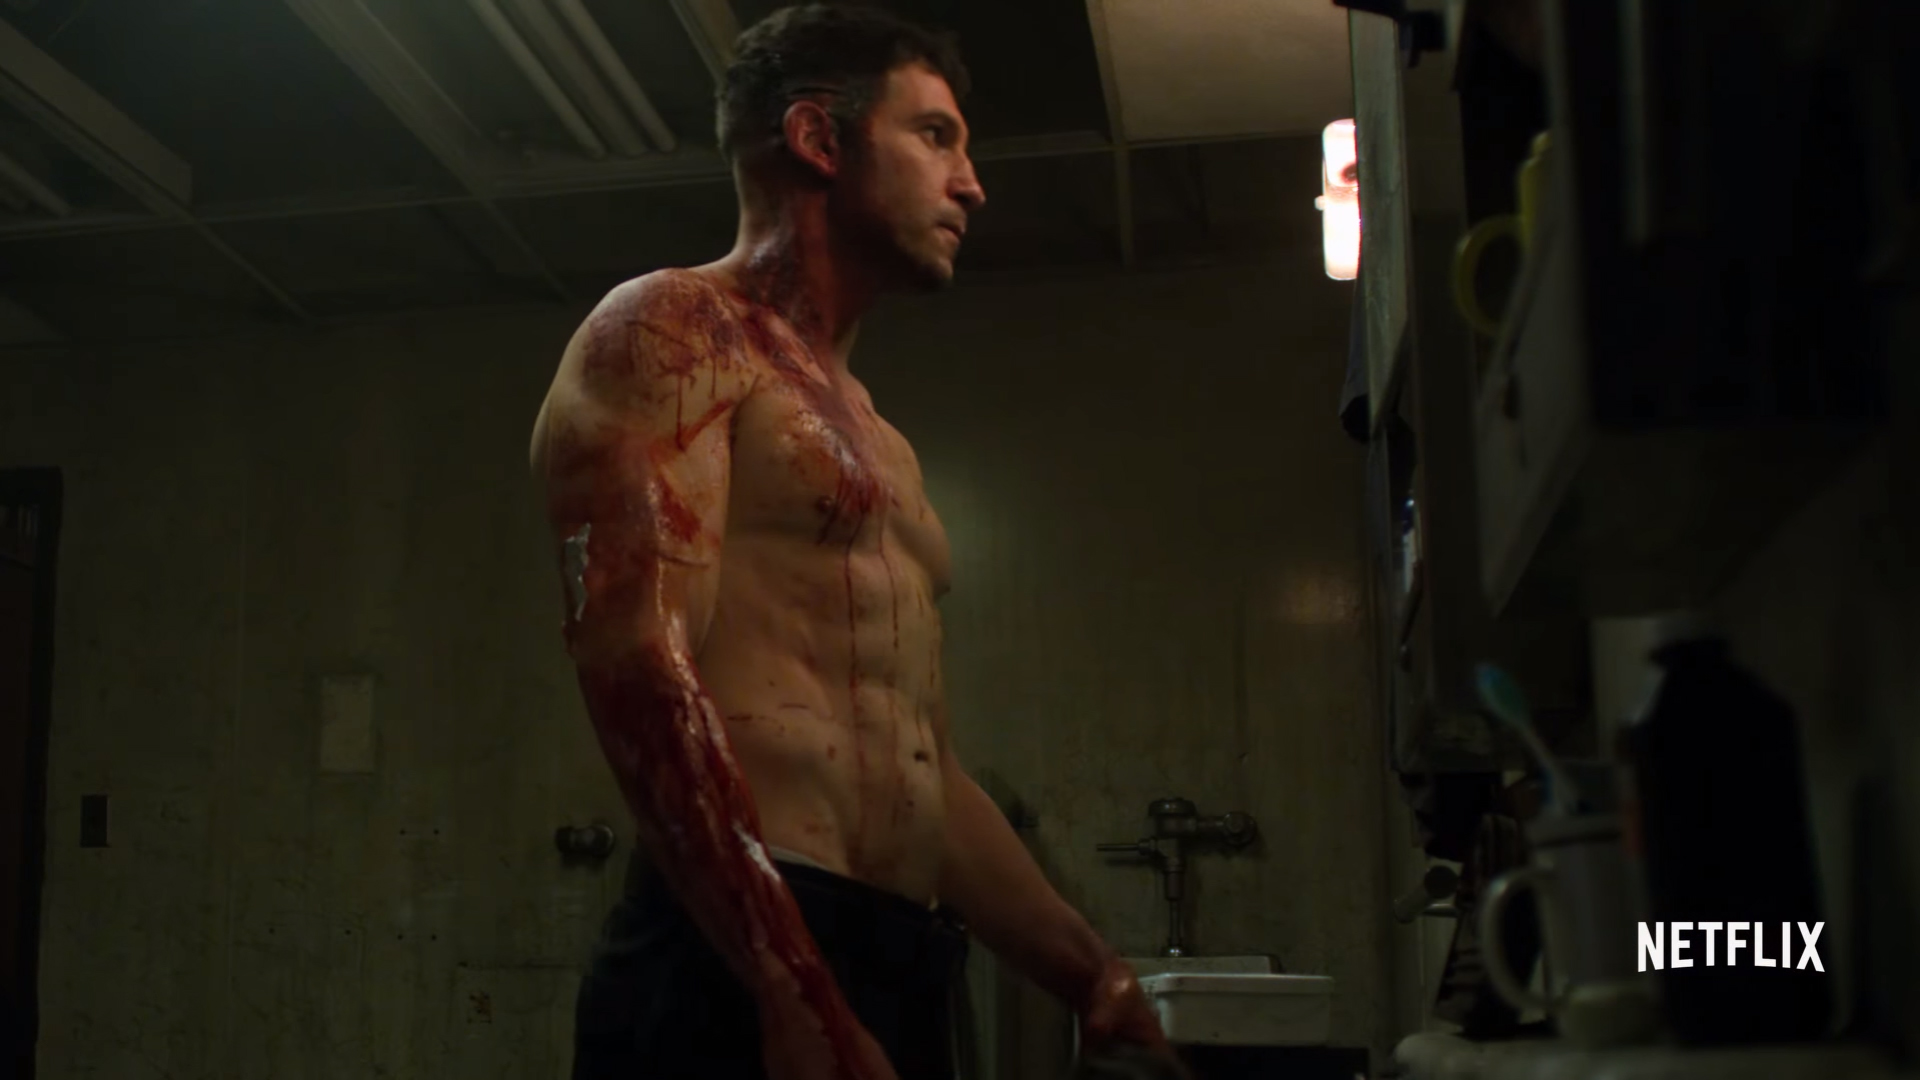 punisher shirtless